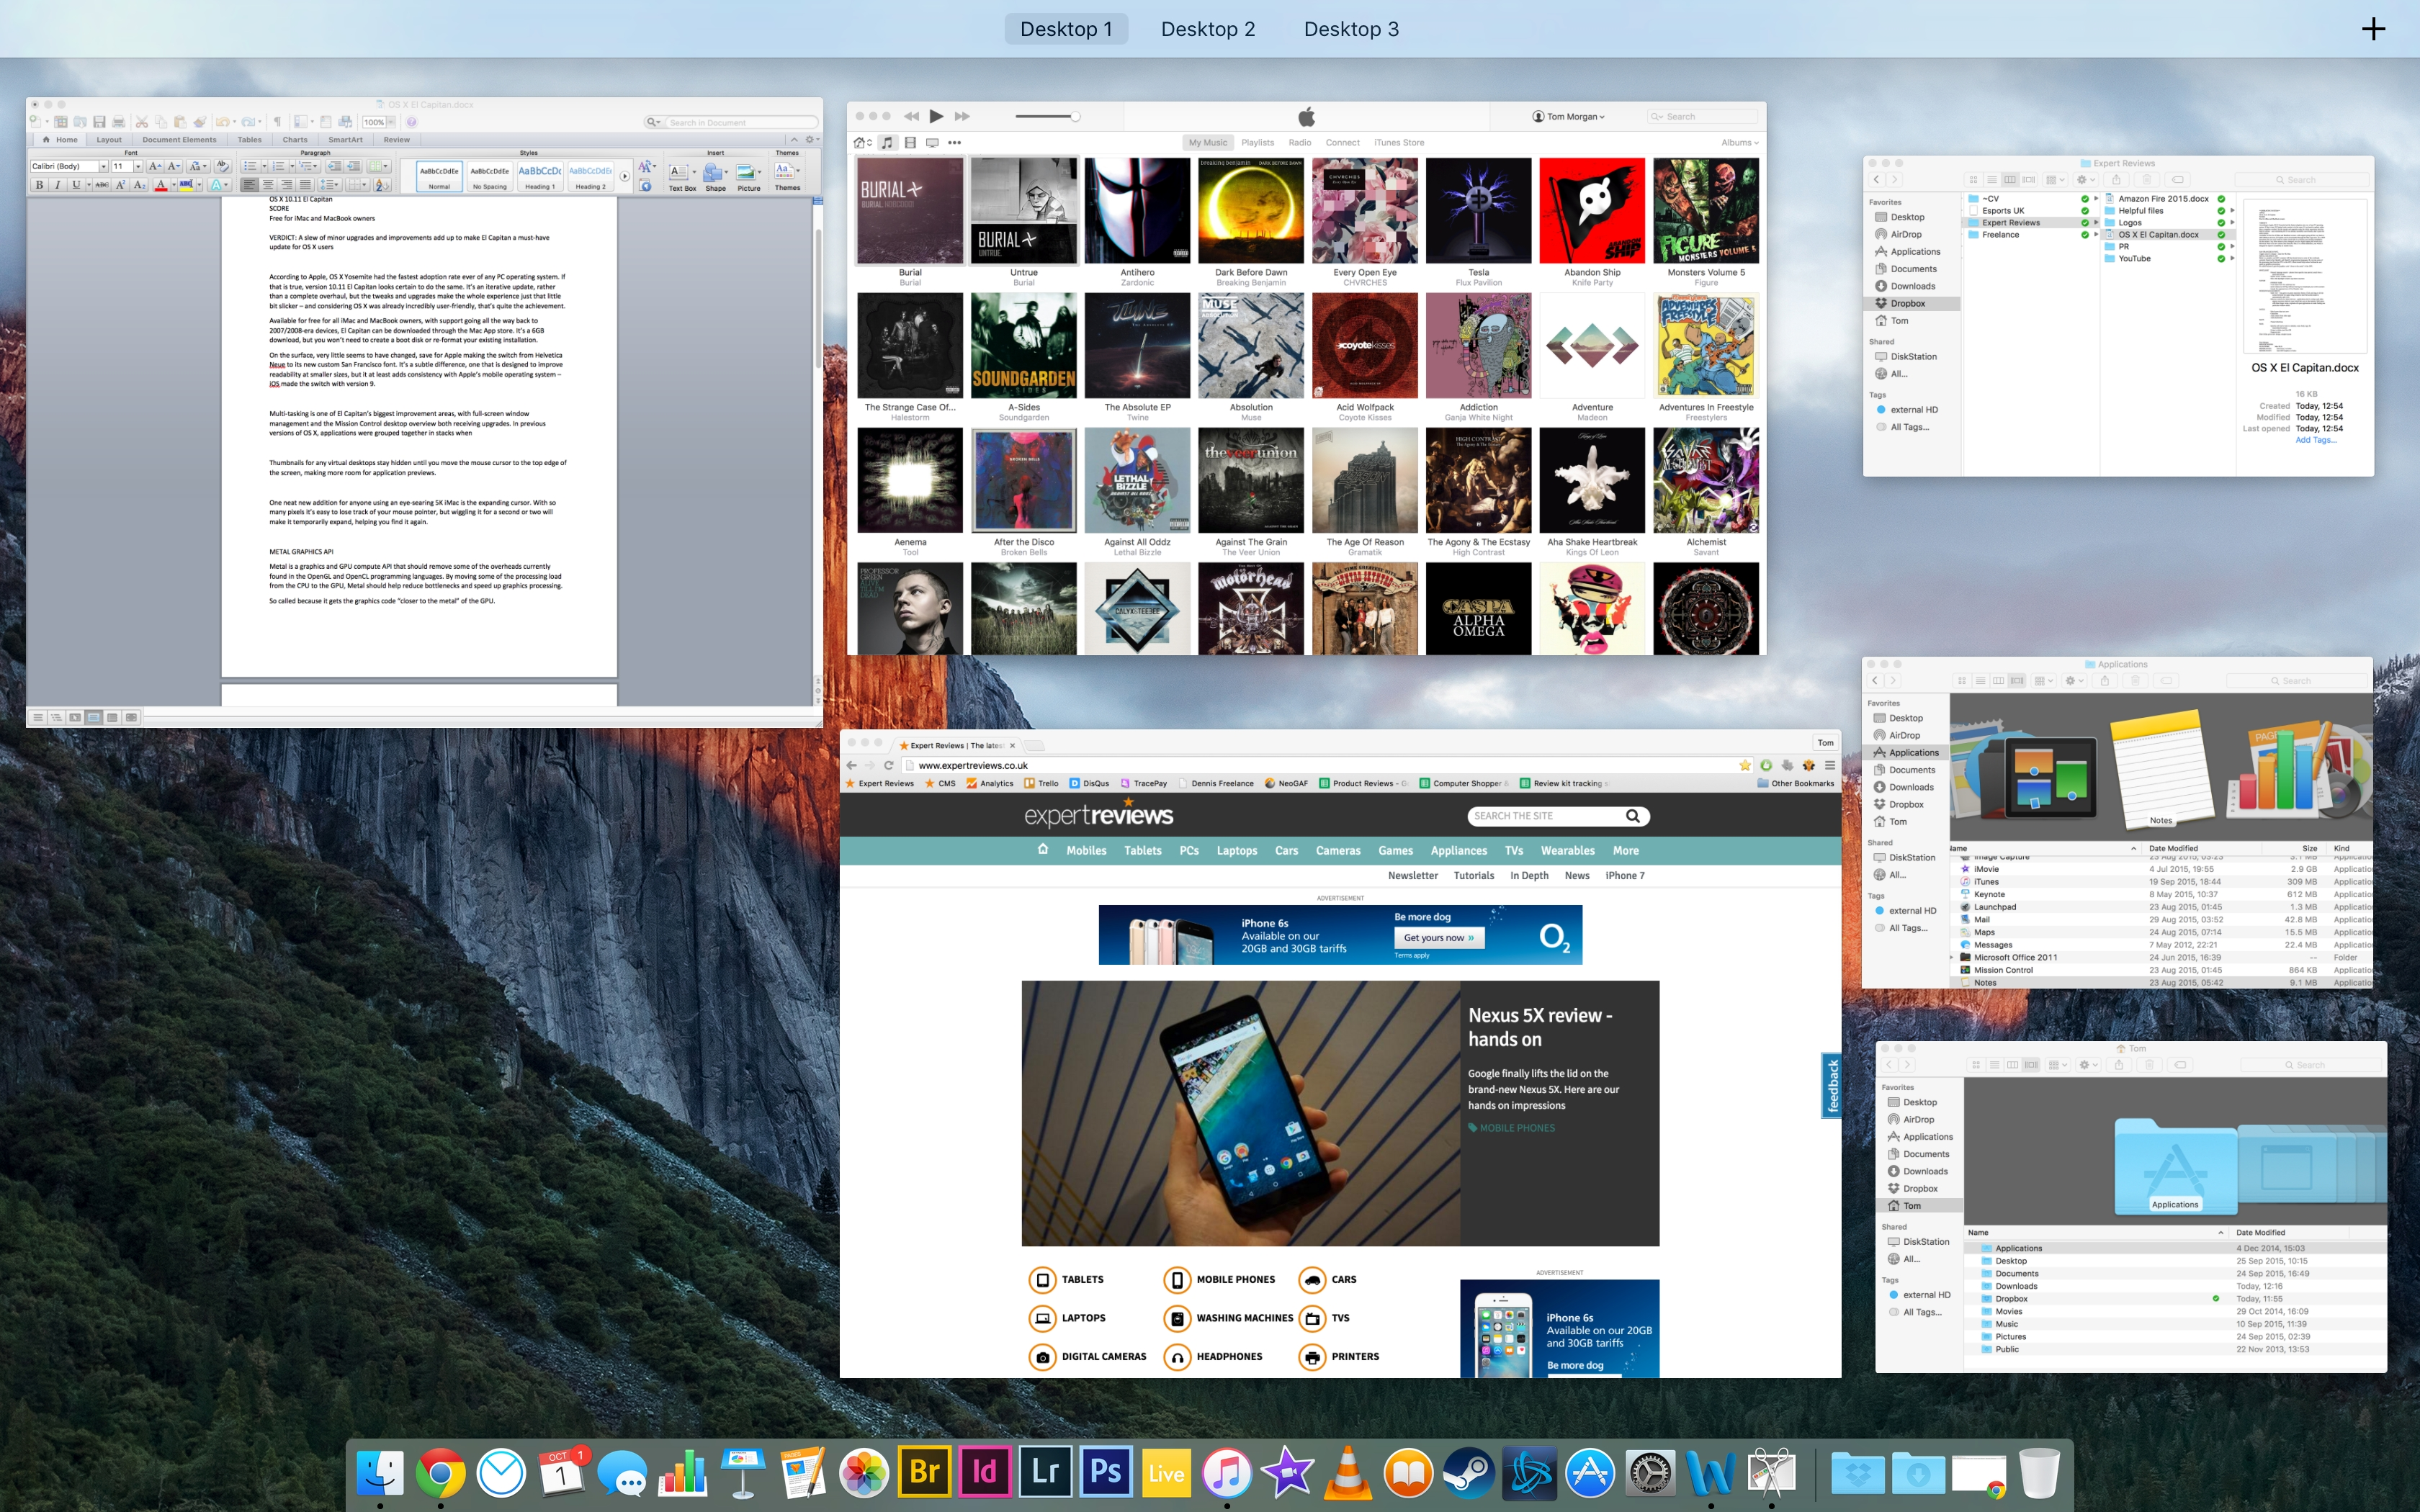 Apple os x 1011 el capitan review expert reviews mission control os x el capitan ccuart Gallery